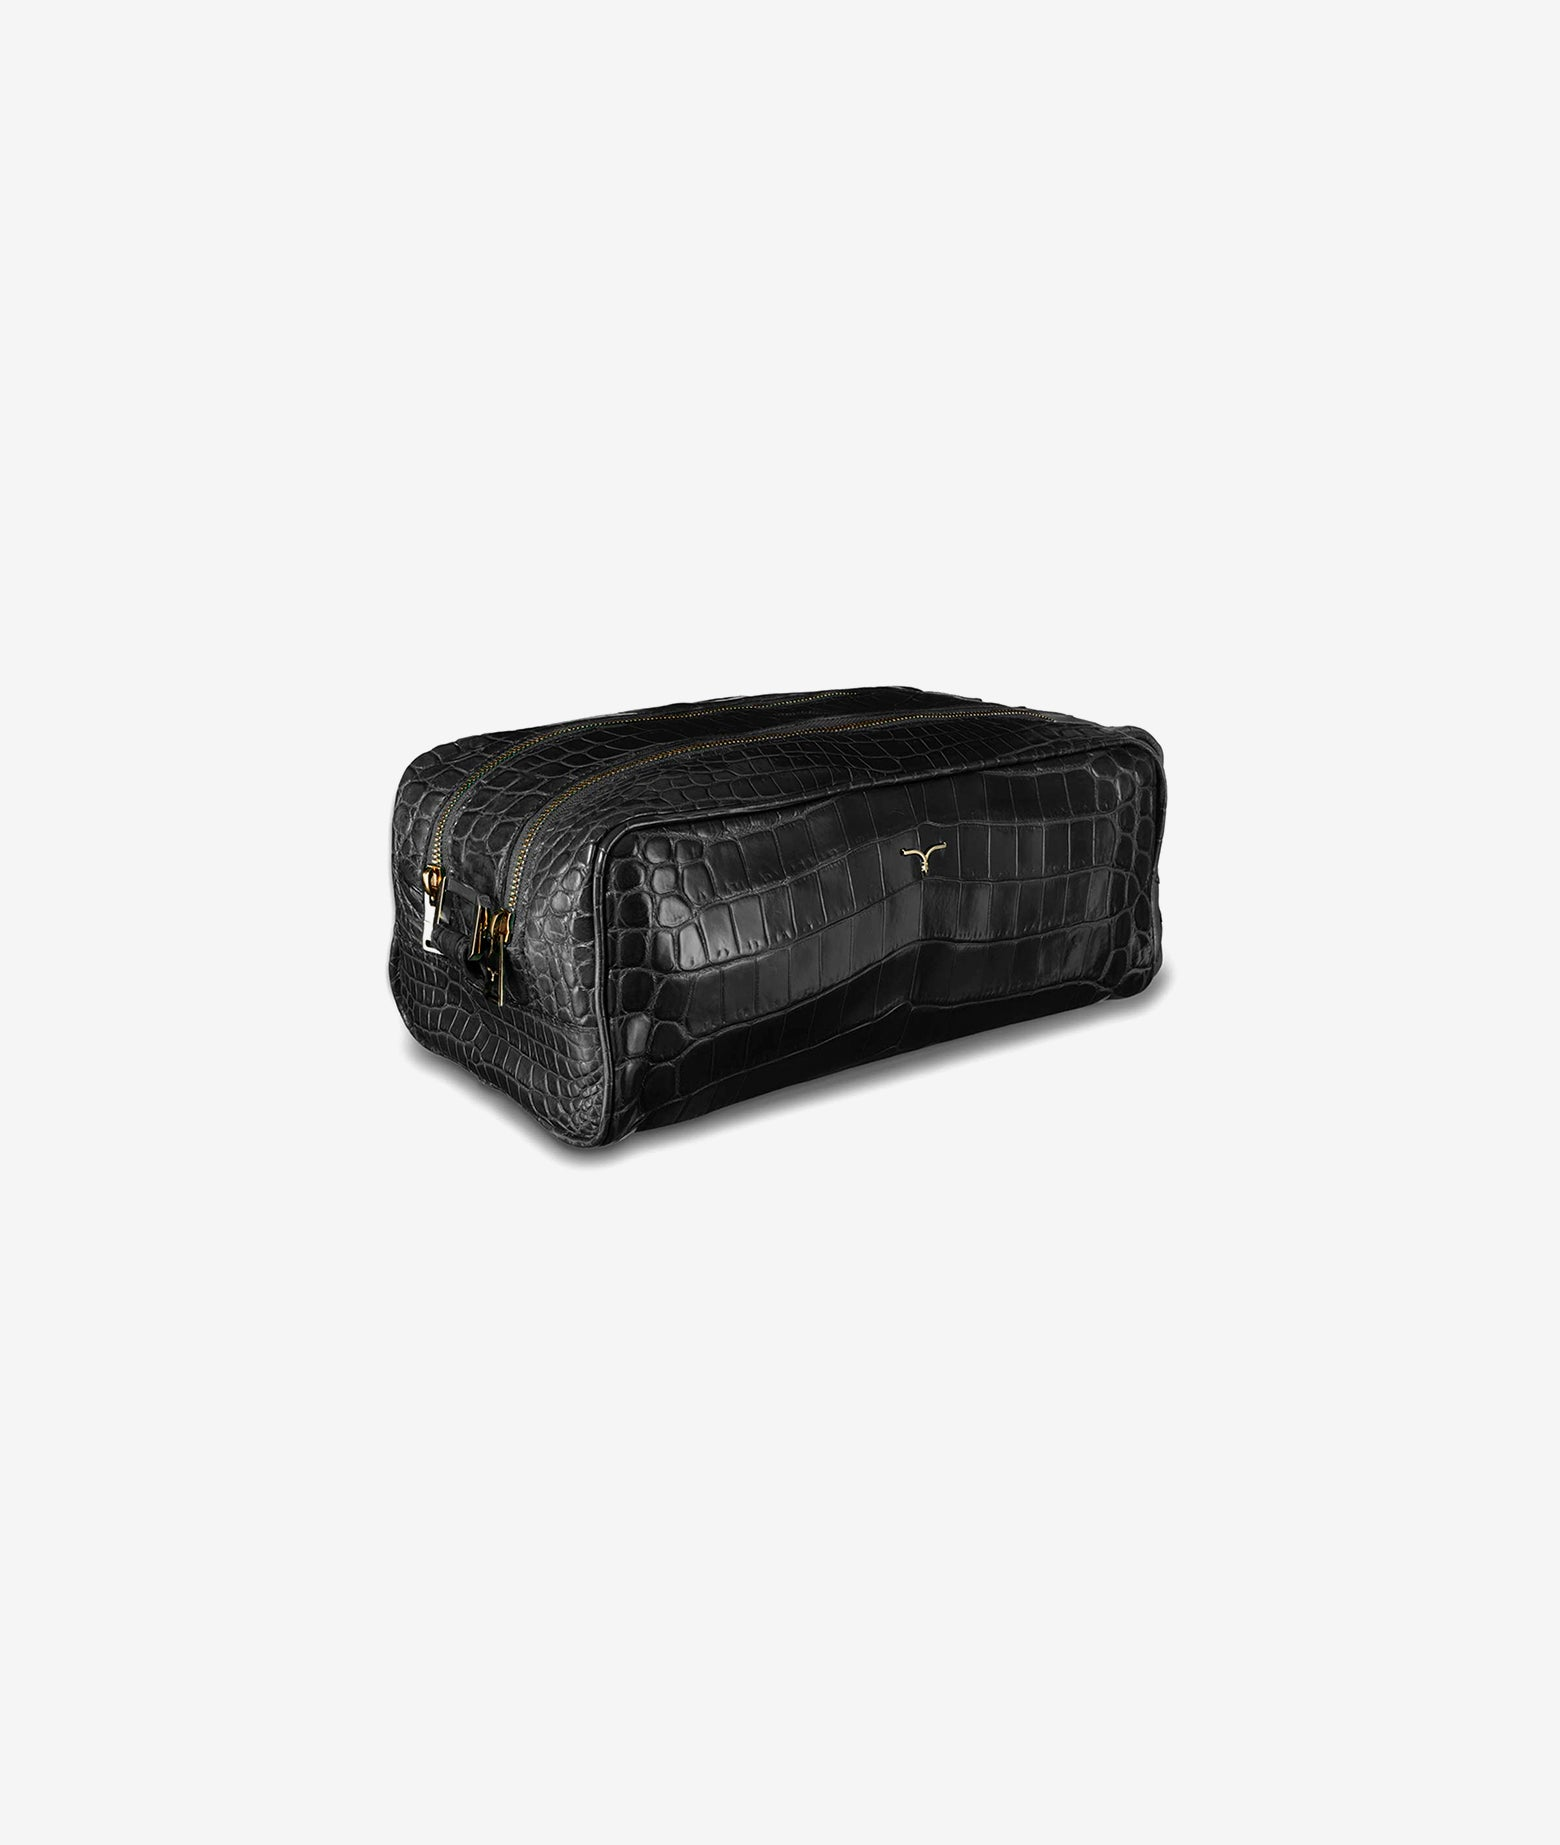 Crocodile leather beauty case